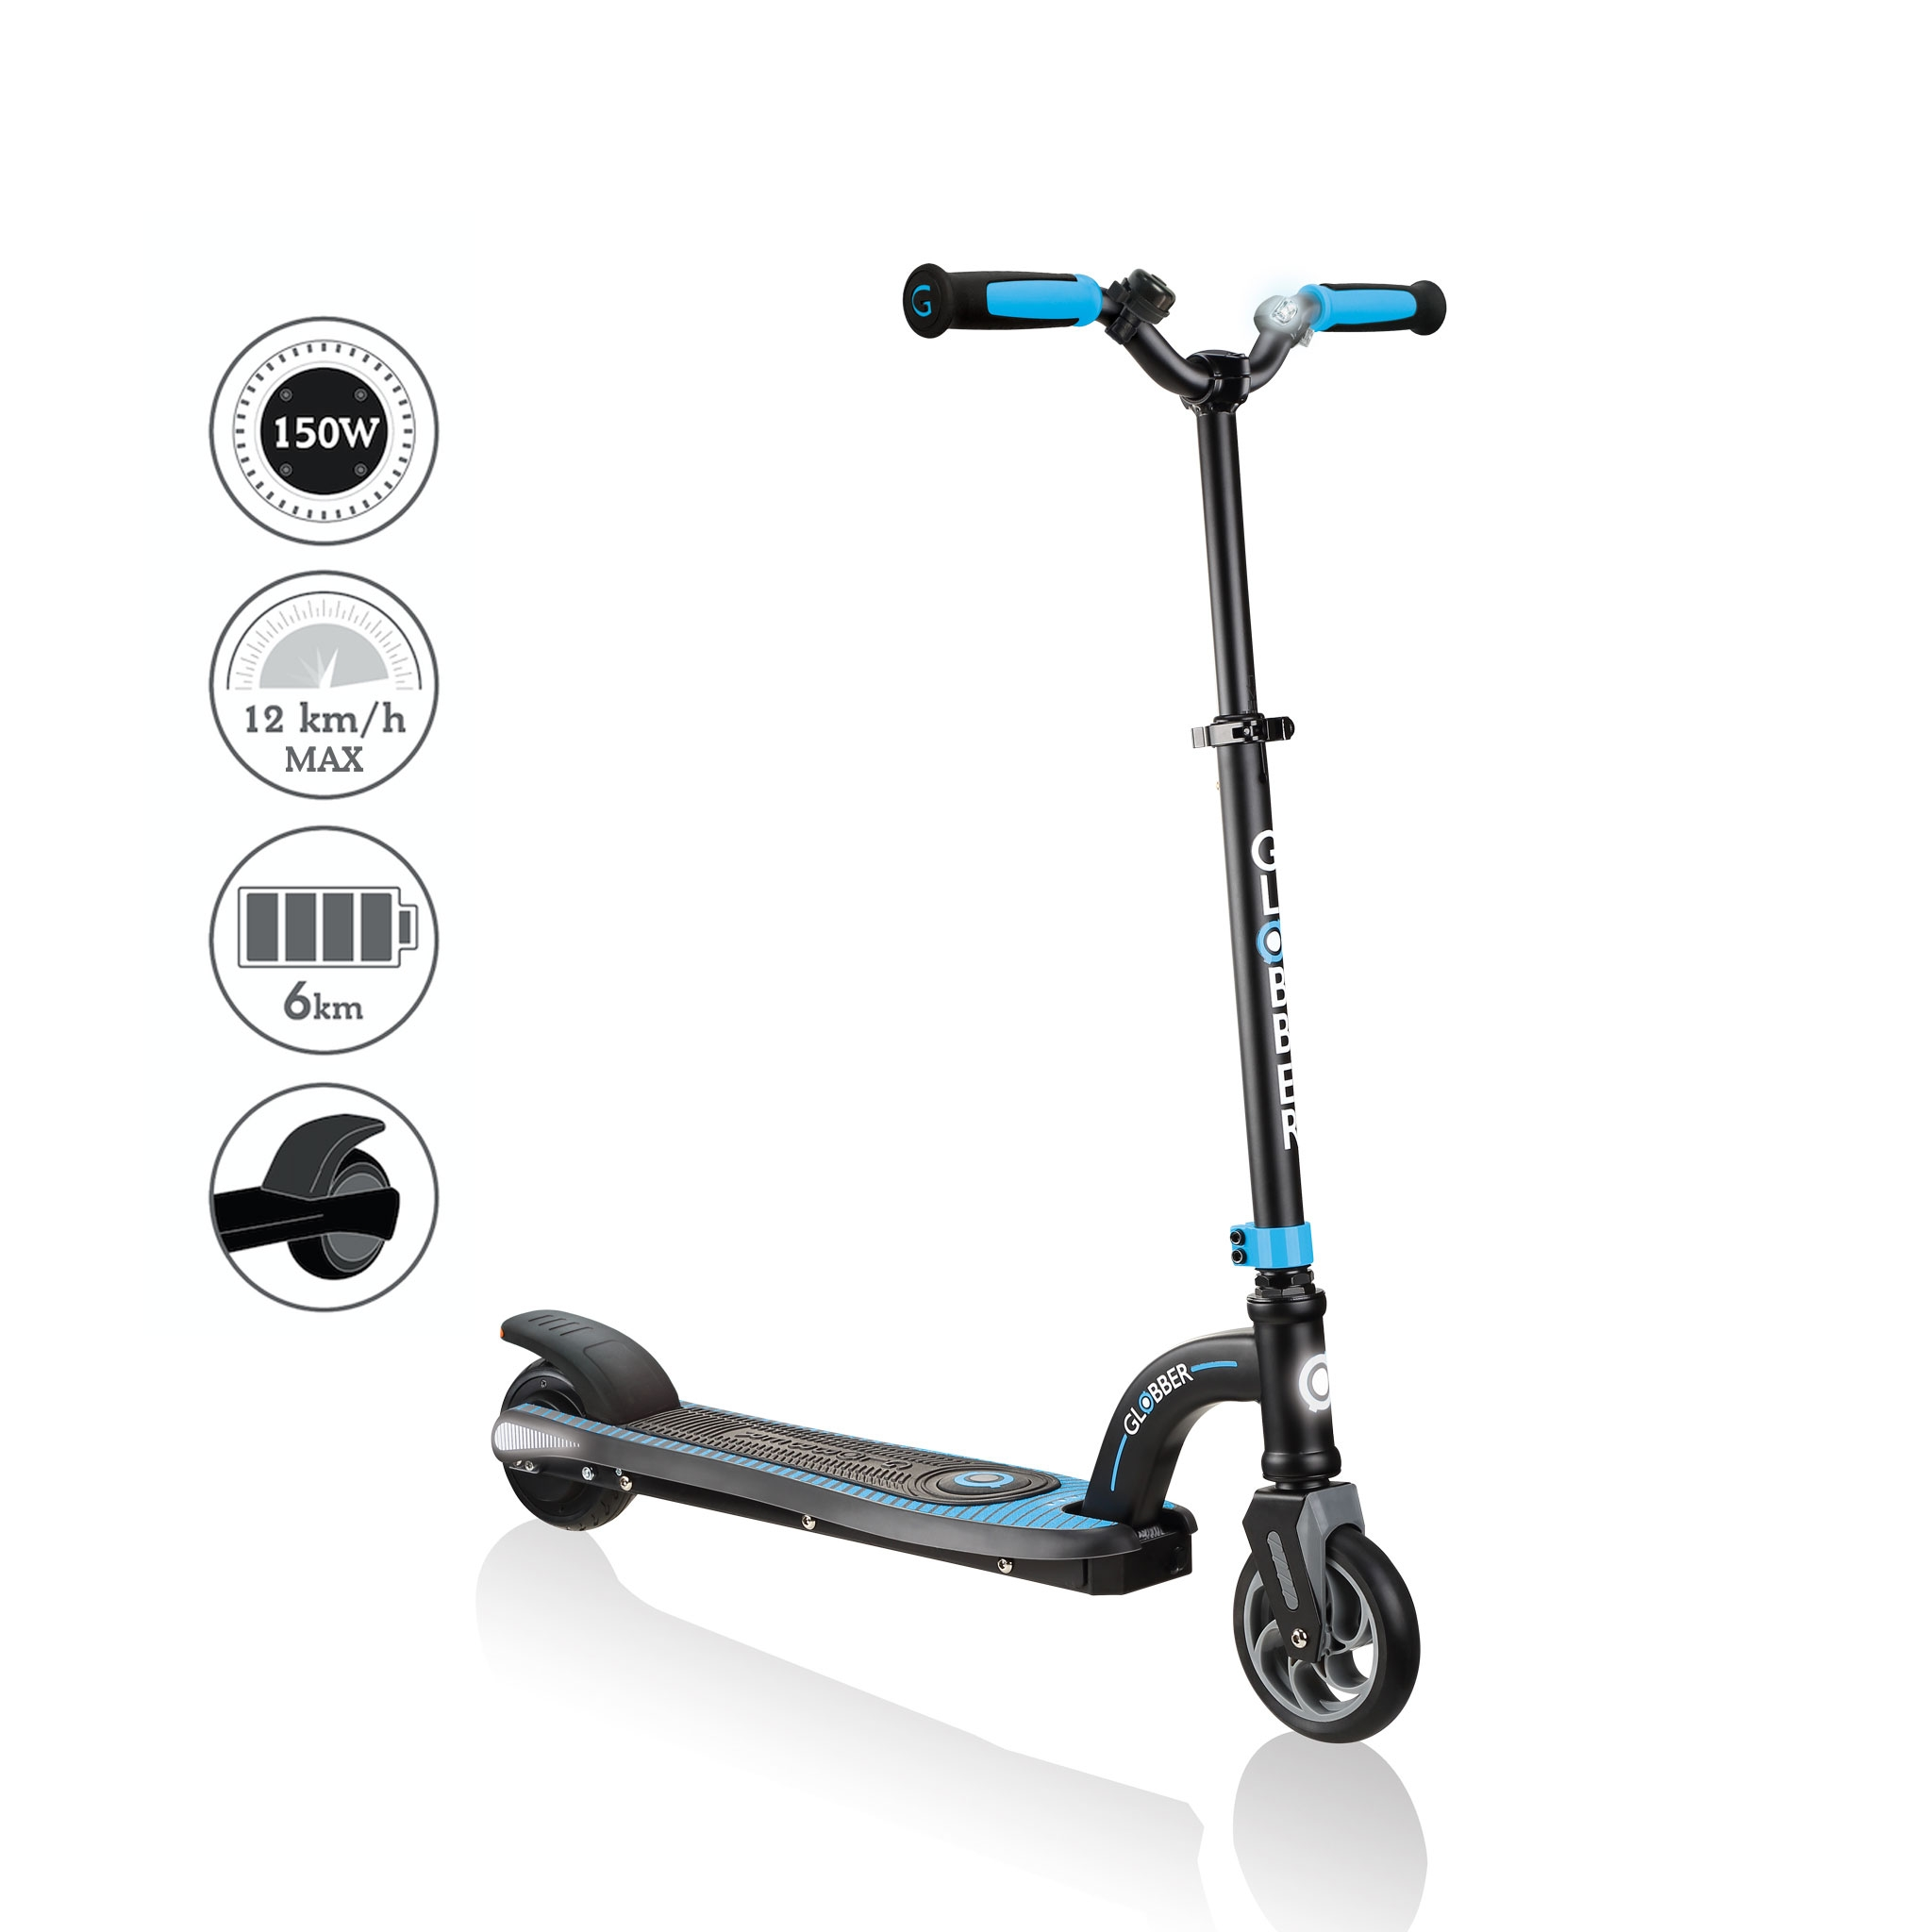 Globber-ONE-K-E-MOTION-10-best-electric-scooter-for-kids-aged-8+-sky-blue2 0